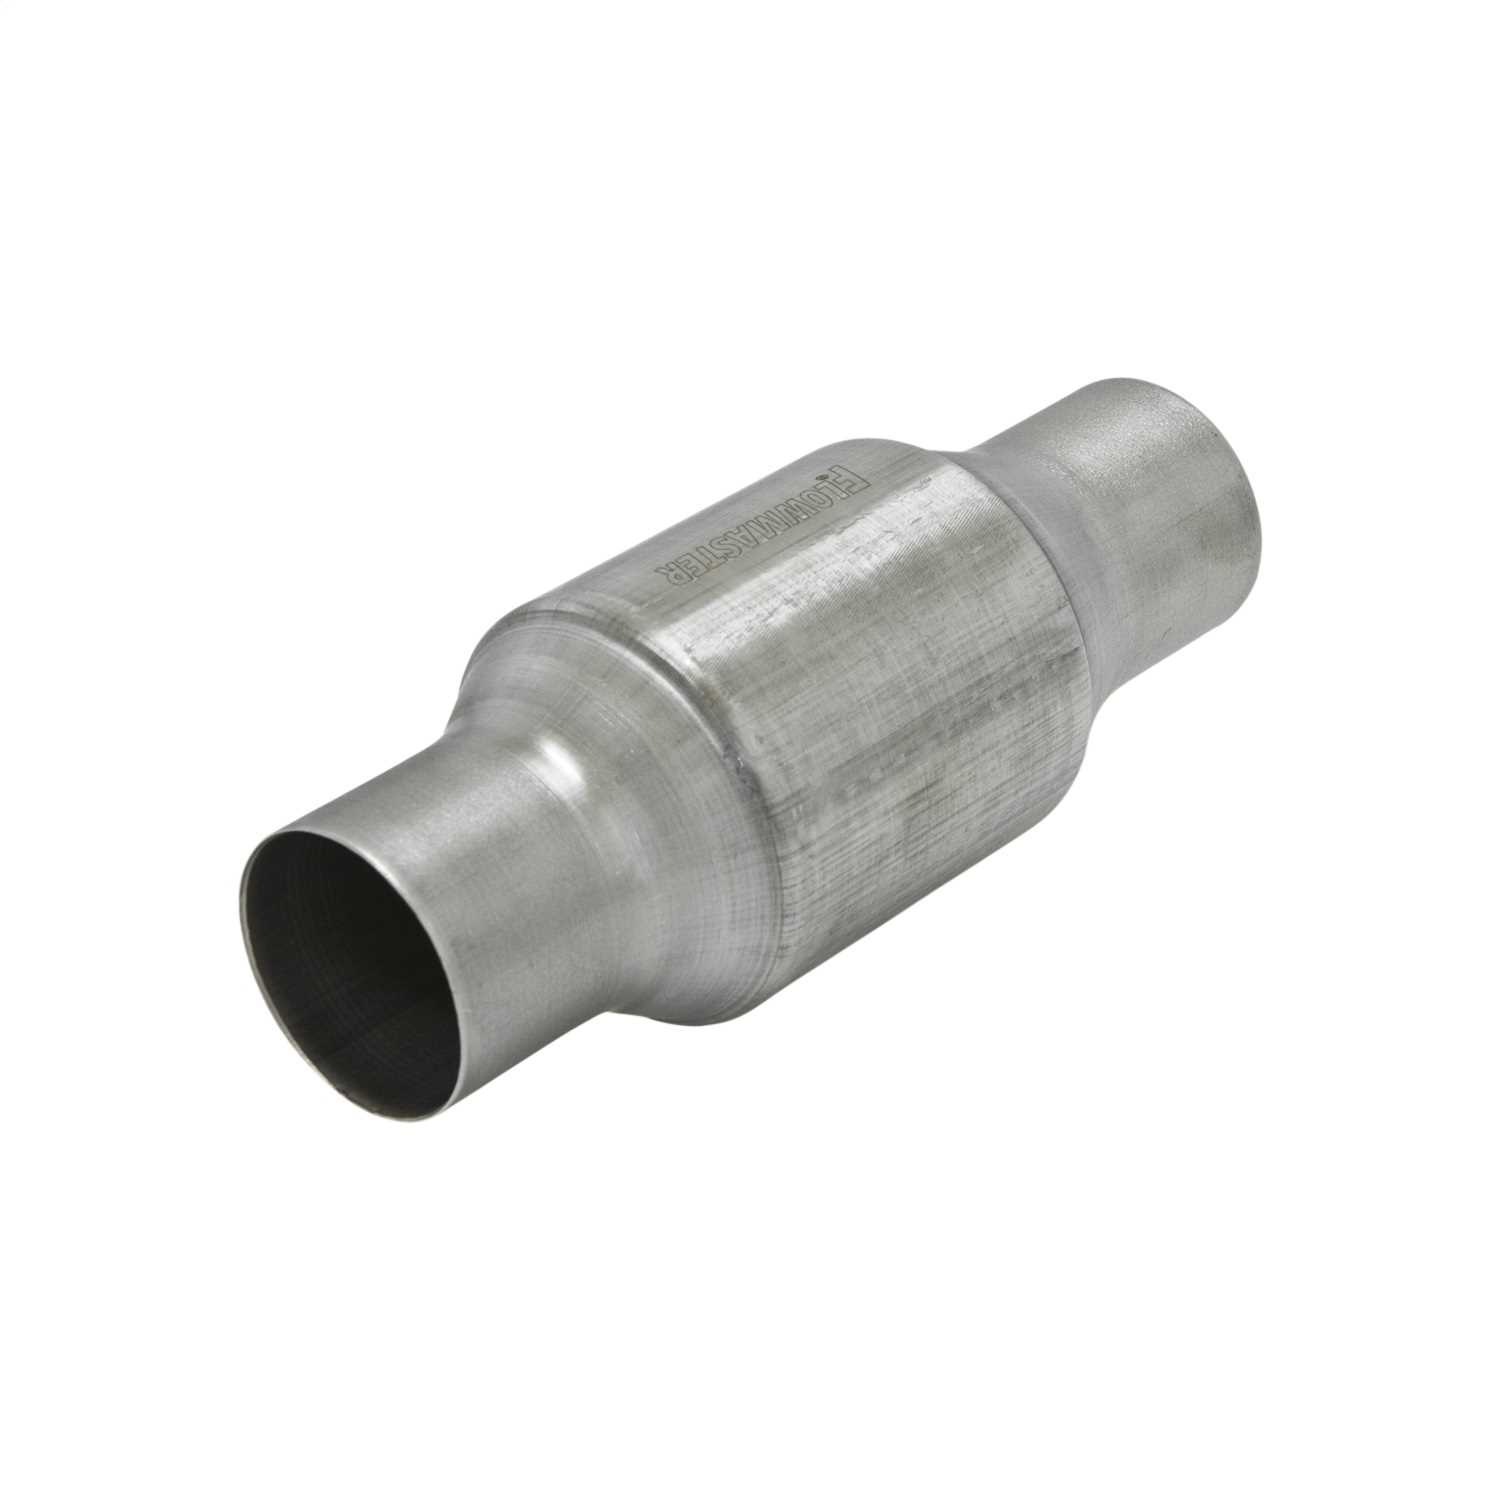 2230130 Flowmaster 49 State Catalytic Converters Universal Catalytic Converter